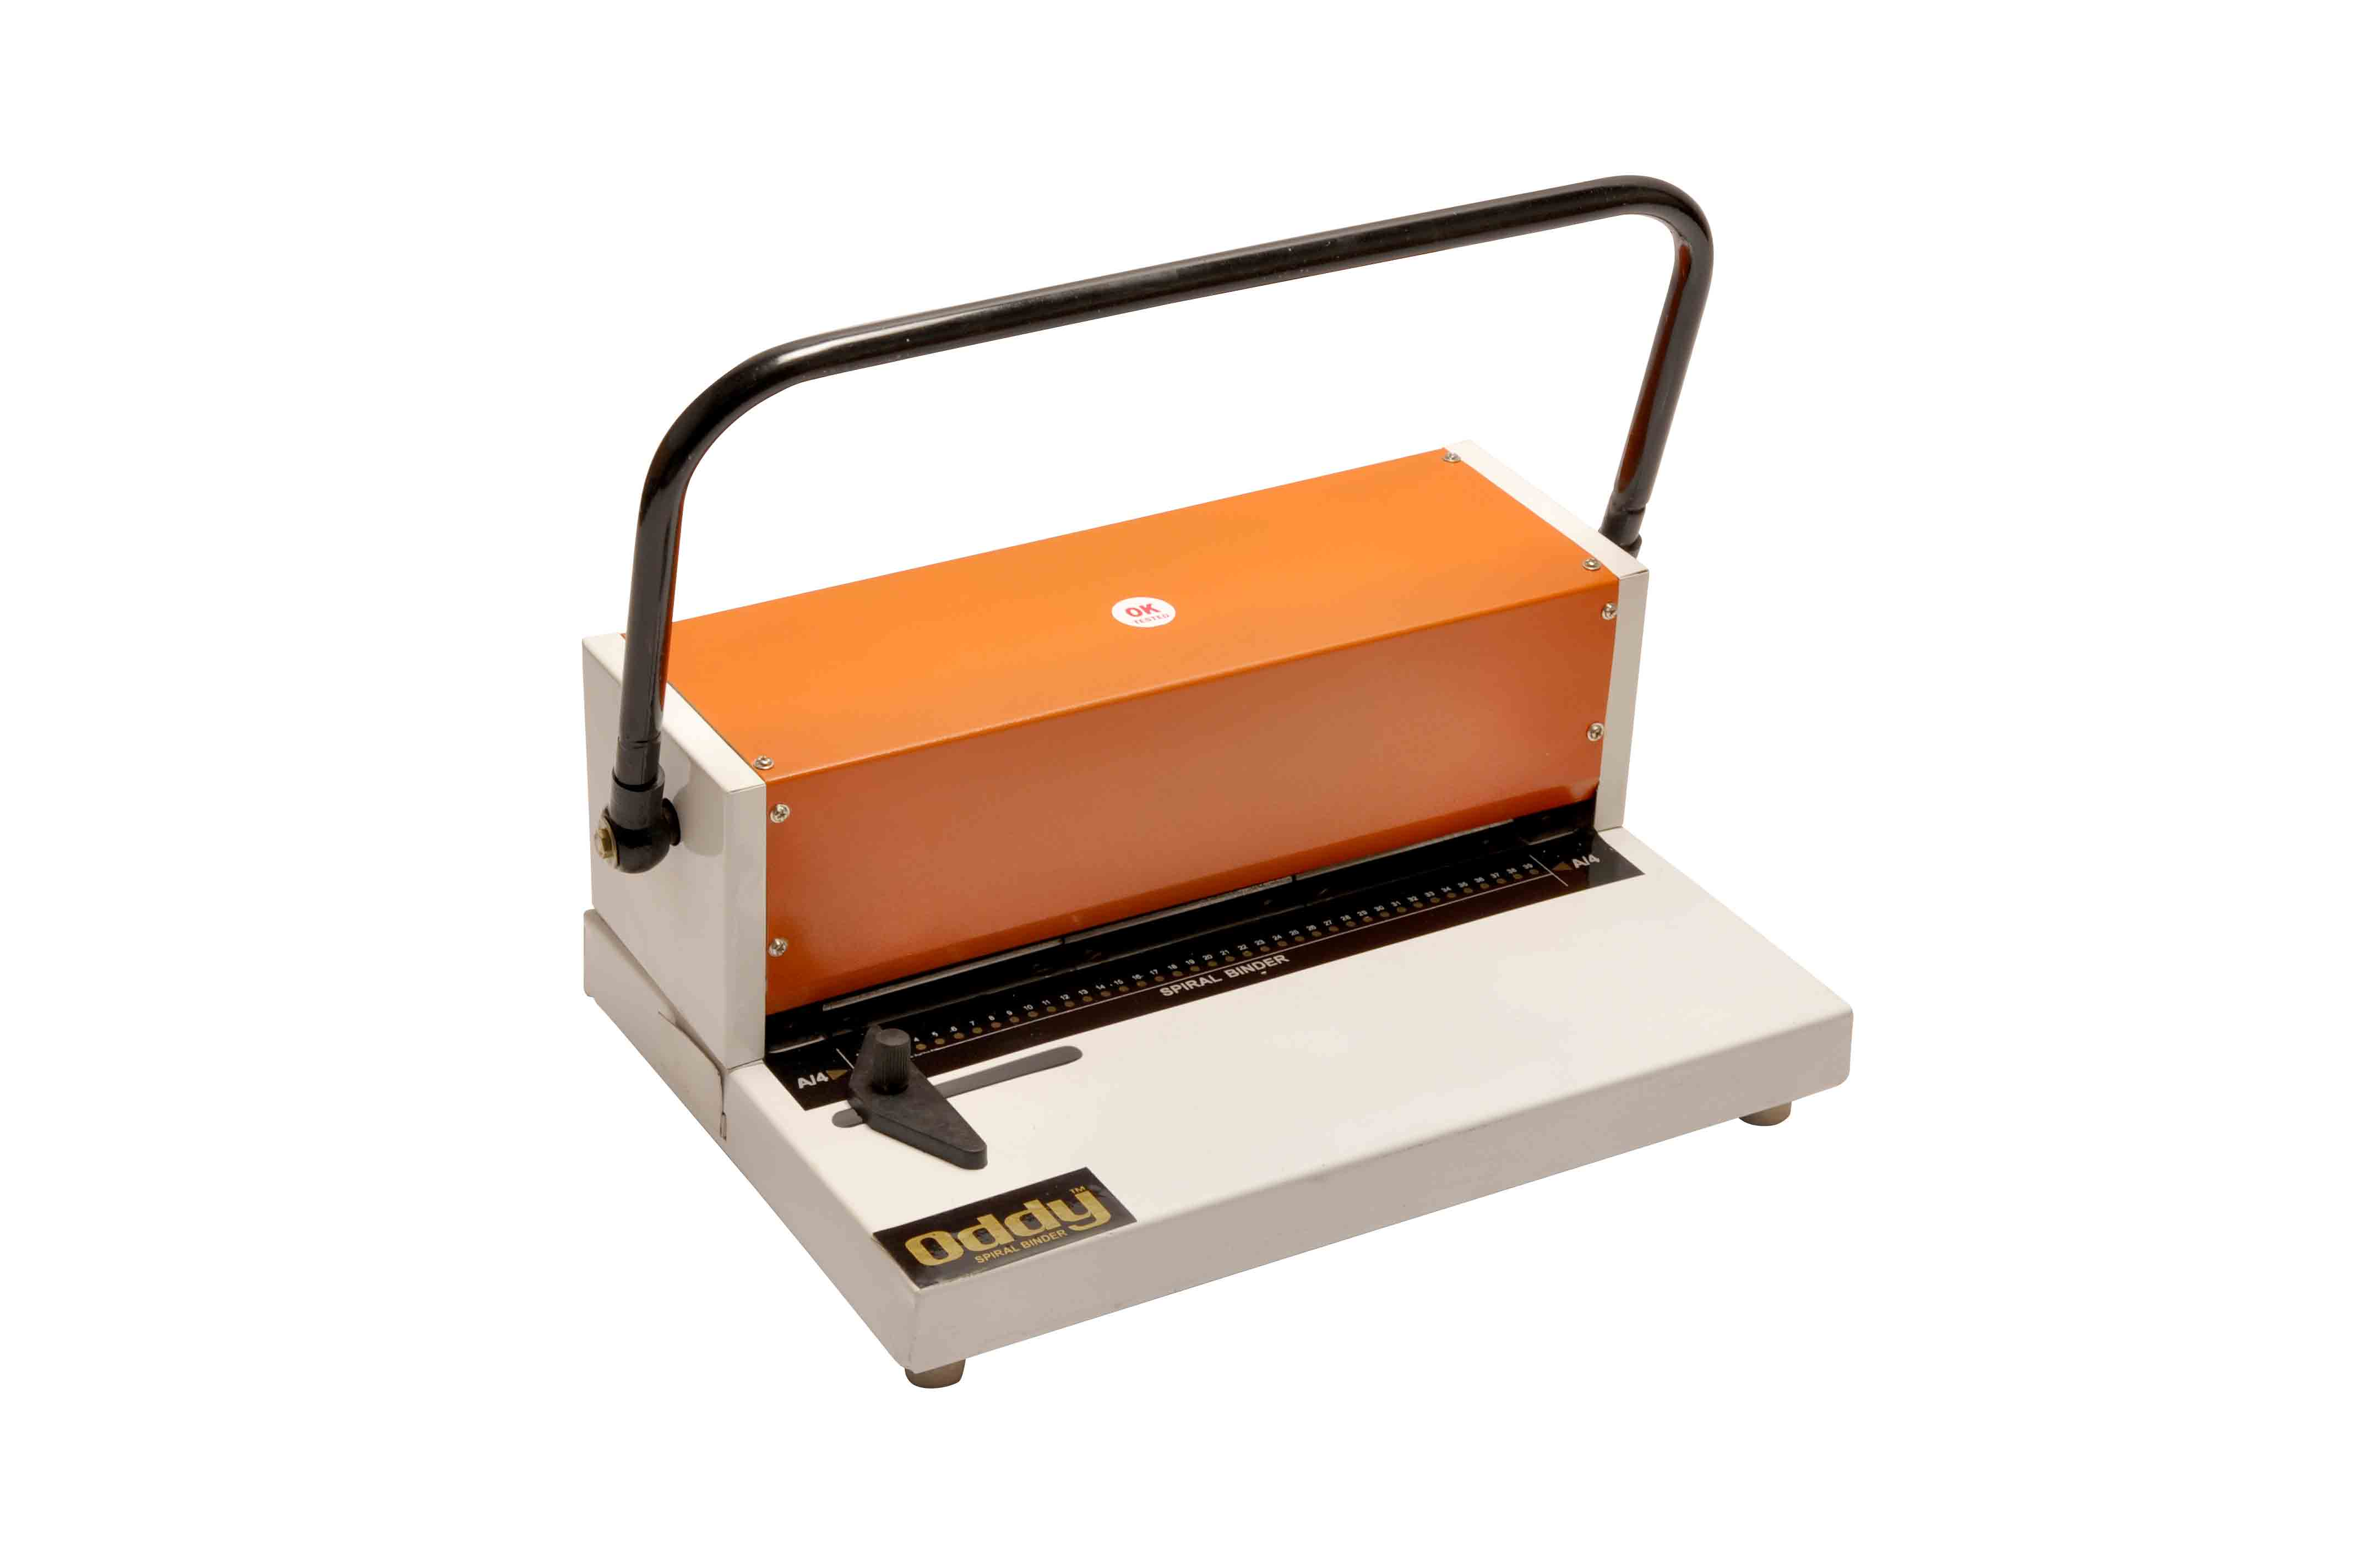 Gluing Machine also Spiral Binding Machines Oddy OF OF LA SP together with Creasing Scoring Machines additionally Electric Drillers besides 821592. on electrical spiral binding machines